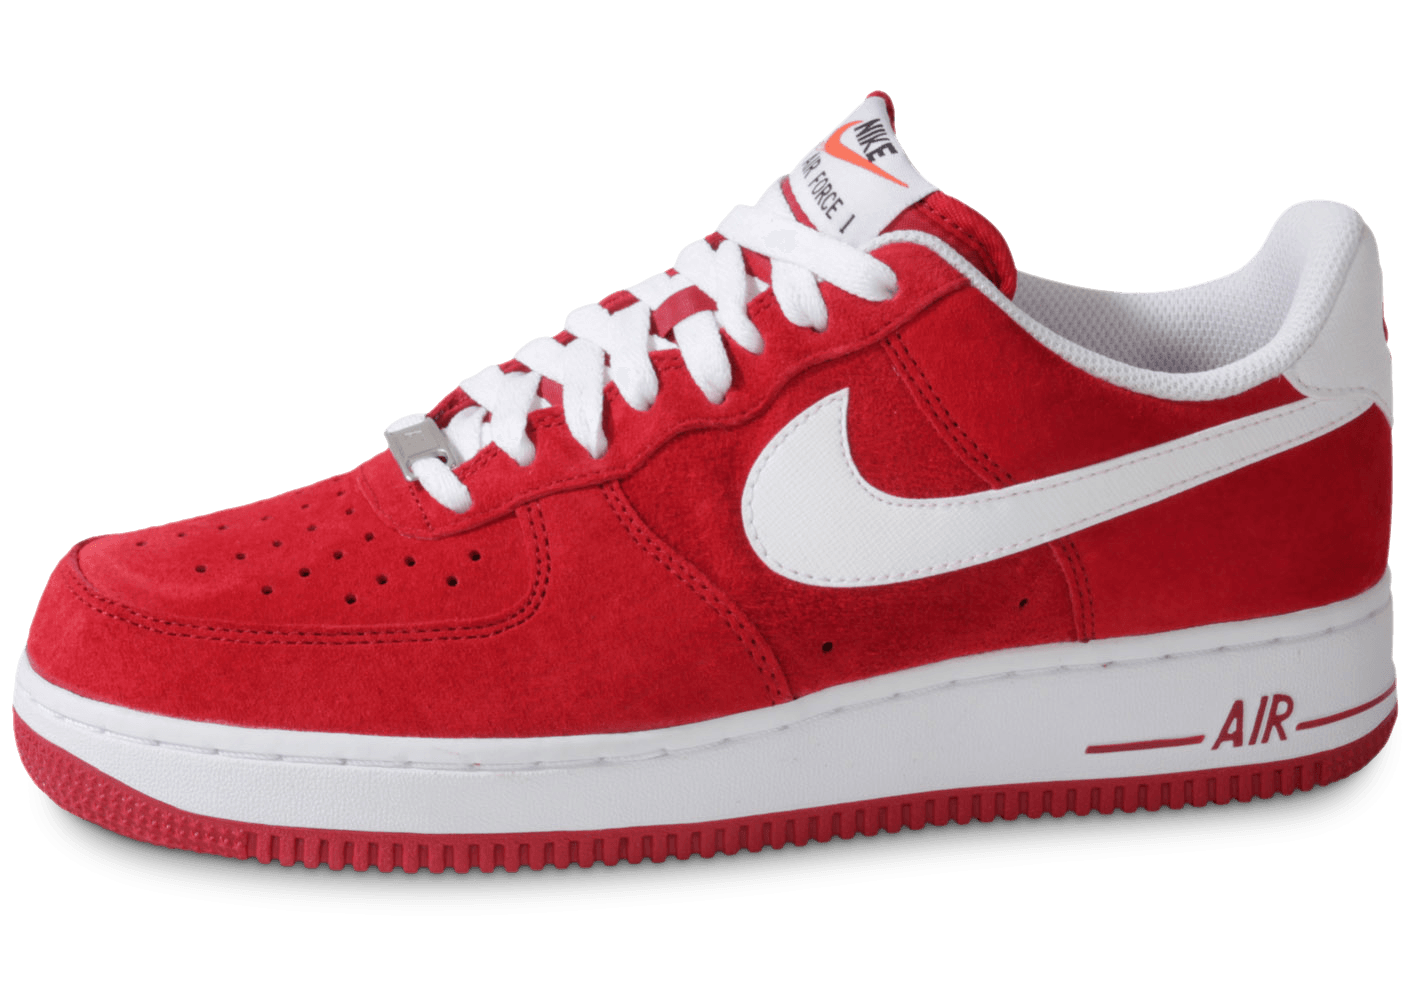 nike air force 1 suede rouge chaussures baskets homme. Black Bedroom Furniture Sets. Home Design Ideas